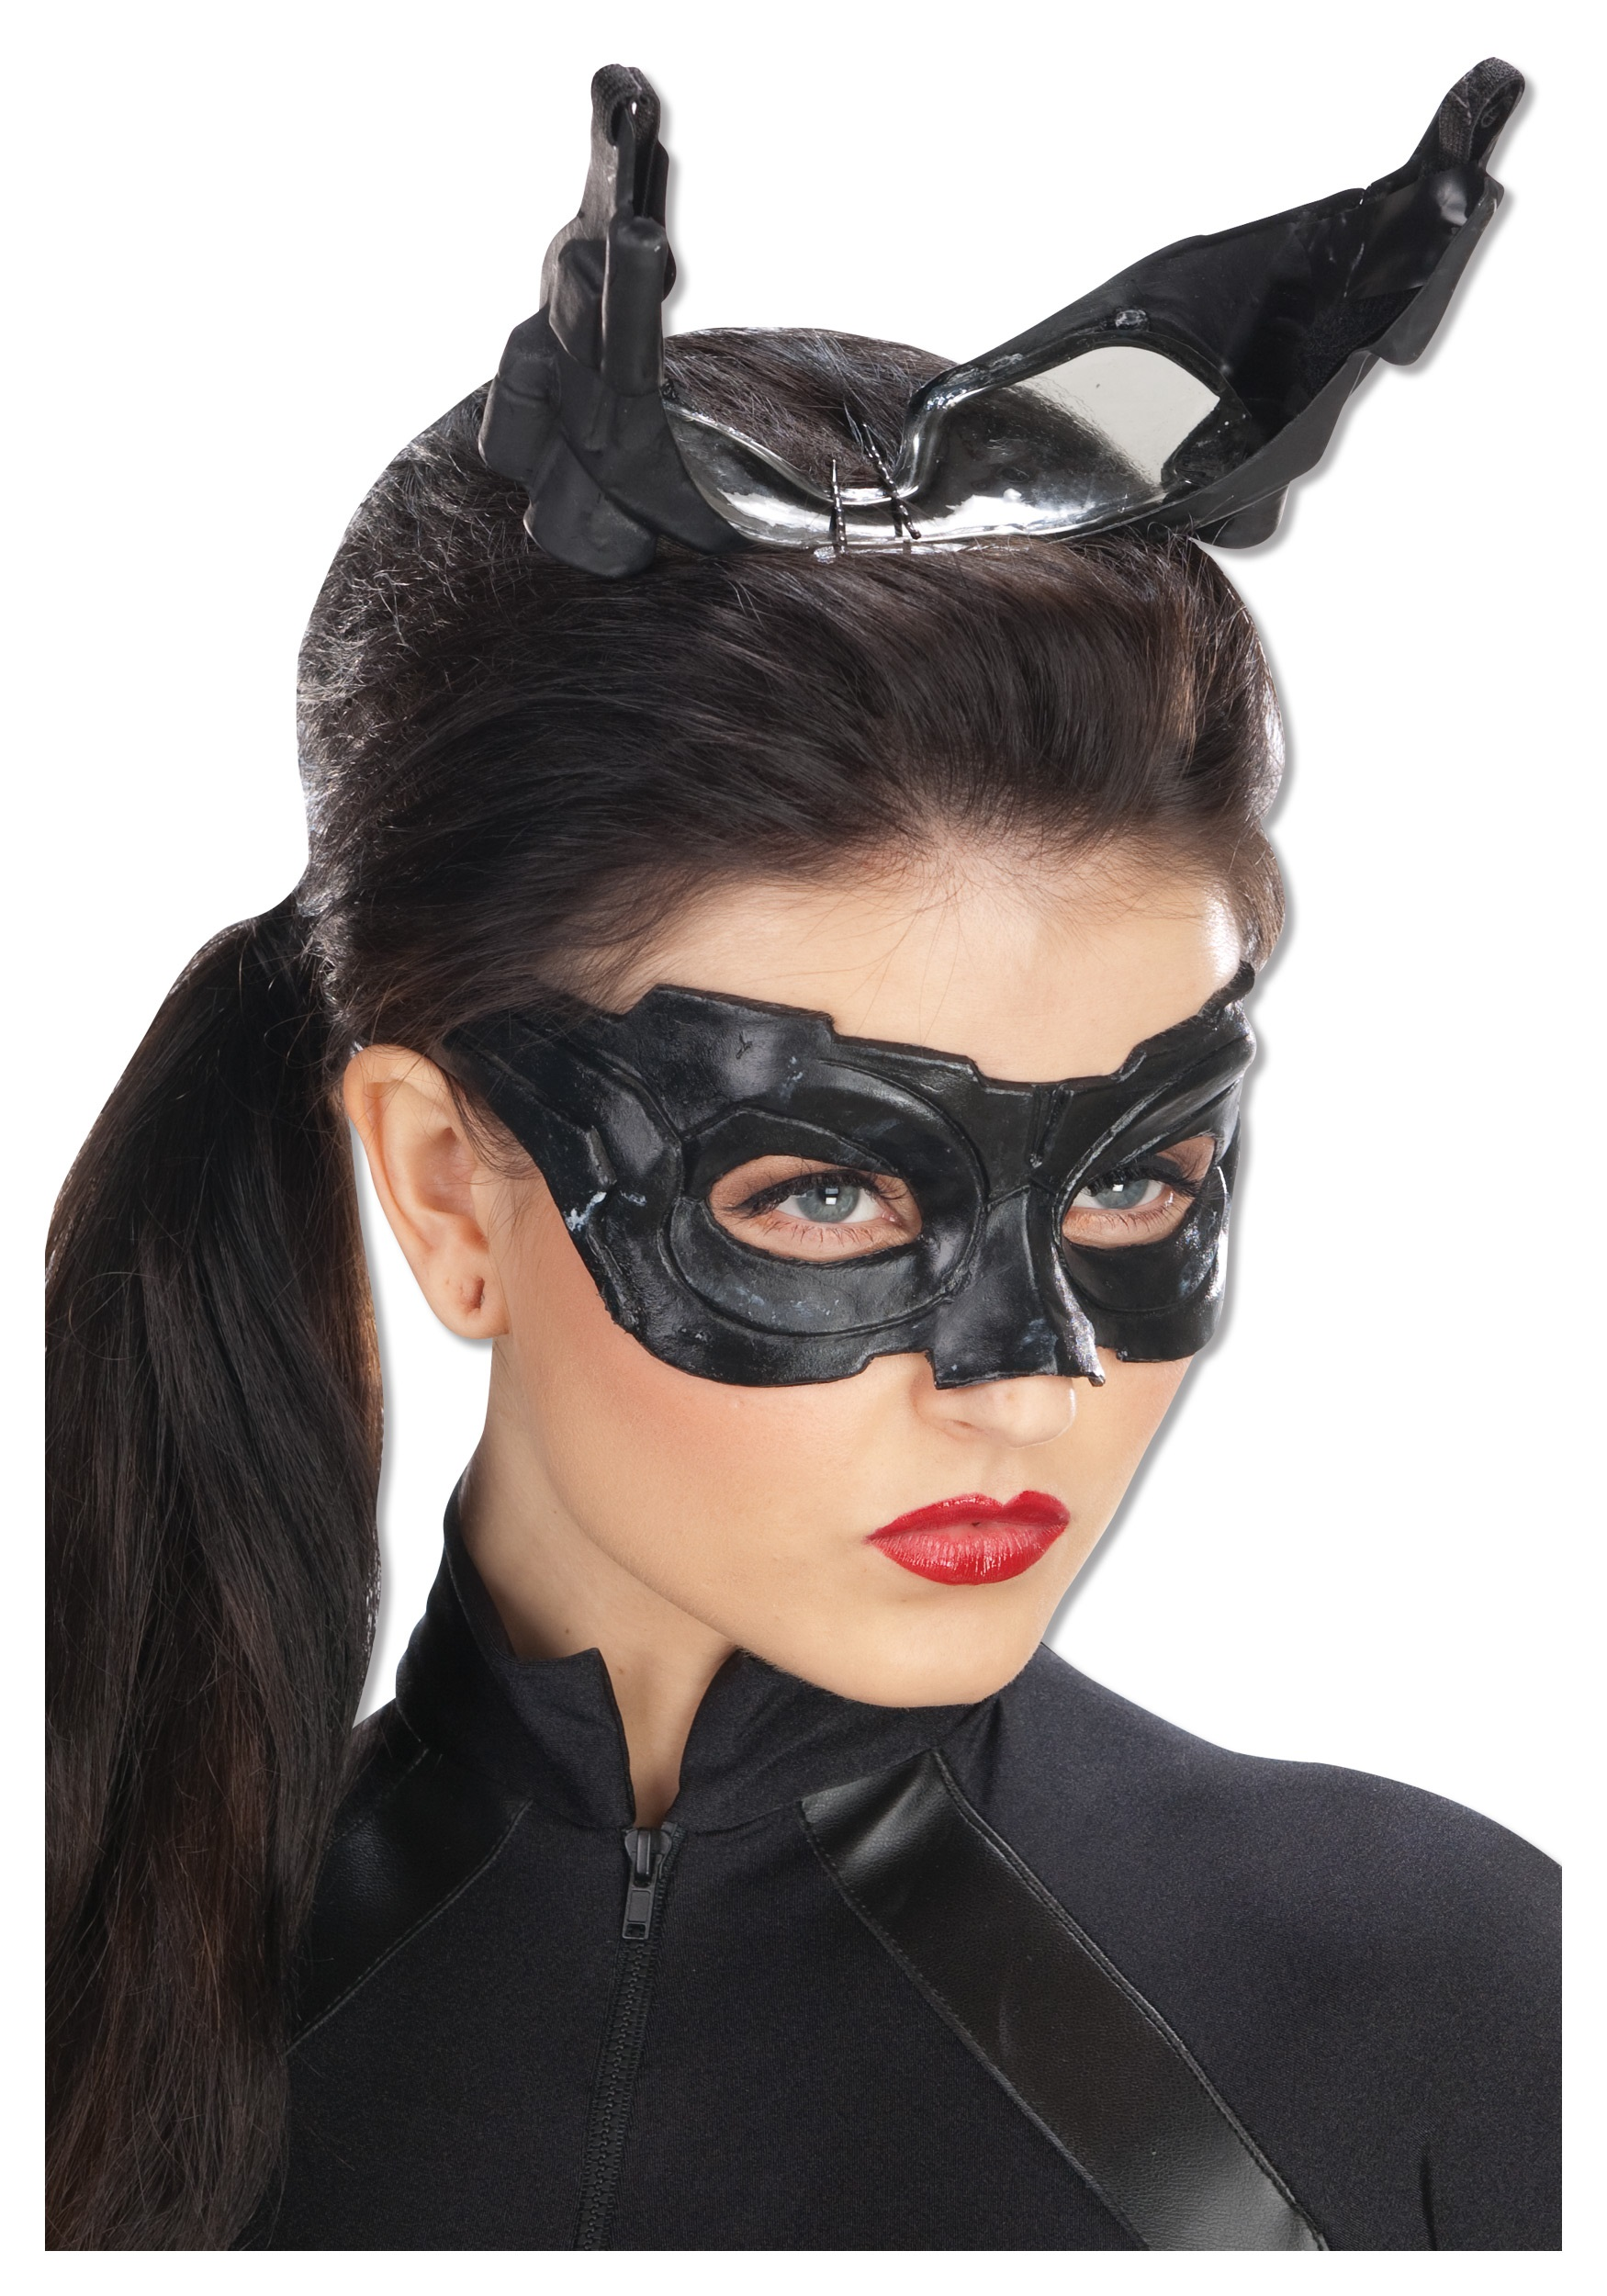 Deluxe Dark Knight Catwoman Mask  sc 1 st  Halloween Costume Ideas & Deluxe Dark Knight Catwoman Mask - Dark Knight Rises Catwoman Accessory